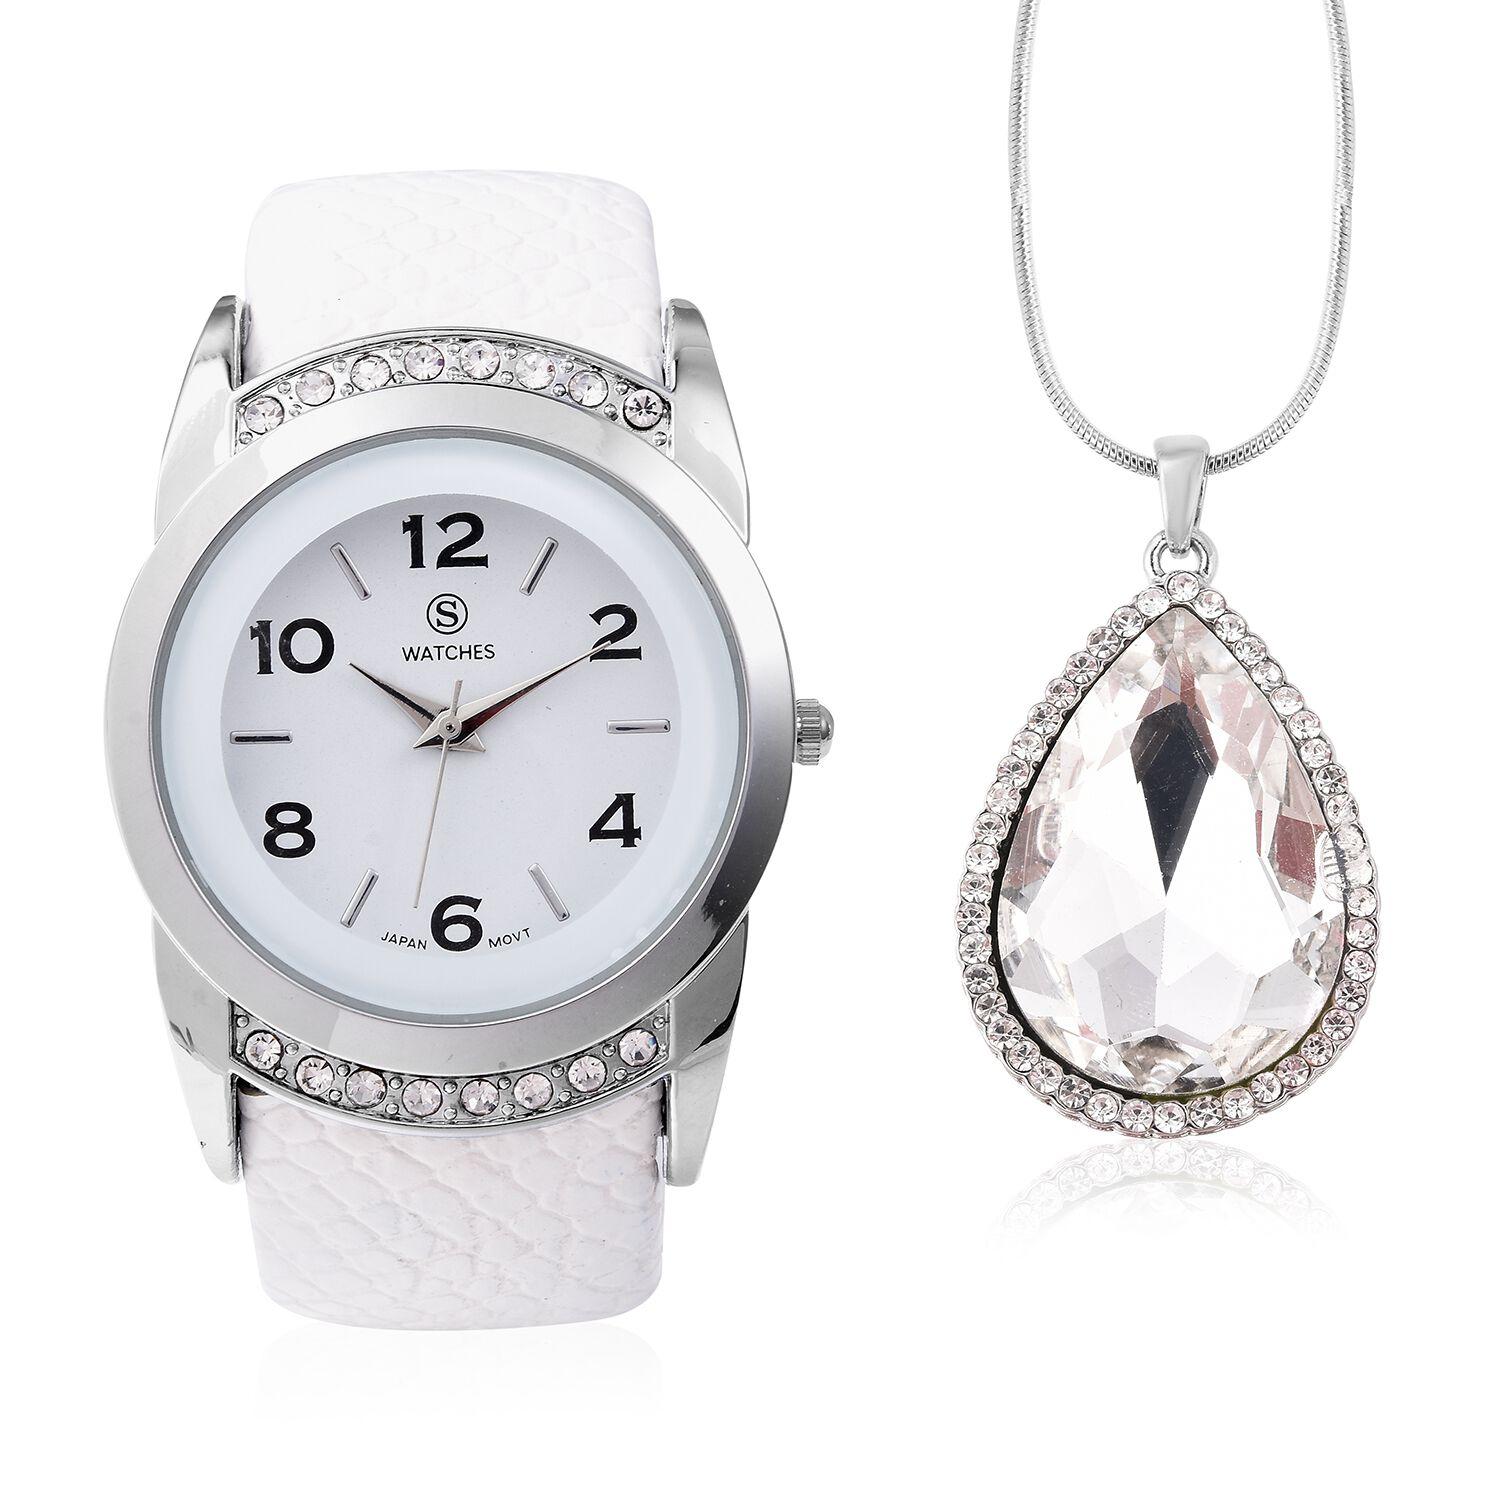 2 Piece Set STRADA Japanese Movement Water Resistant Bangle Watch with Simulated Diamond and White Austrian Crystal Pendant With Chain in Silver